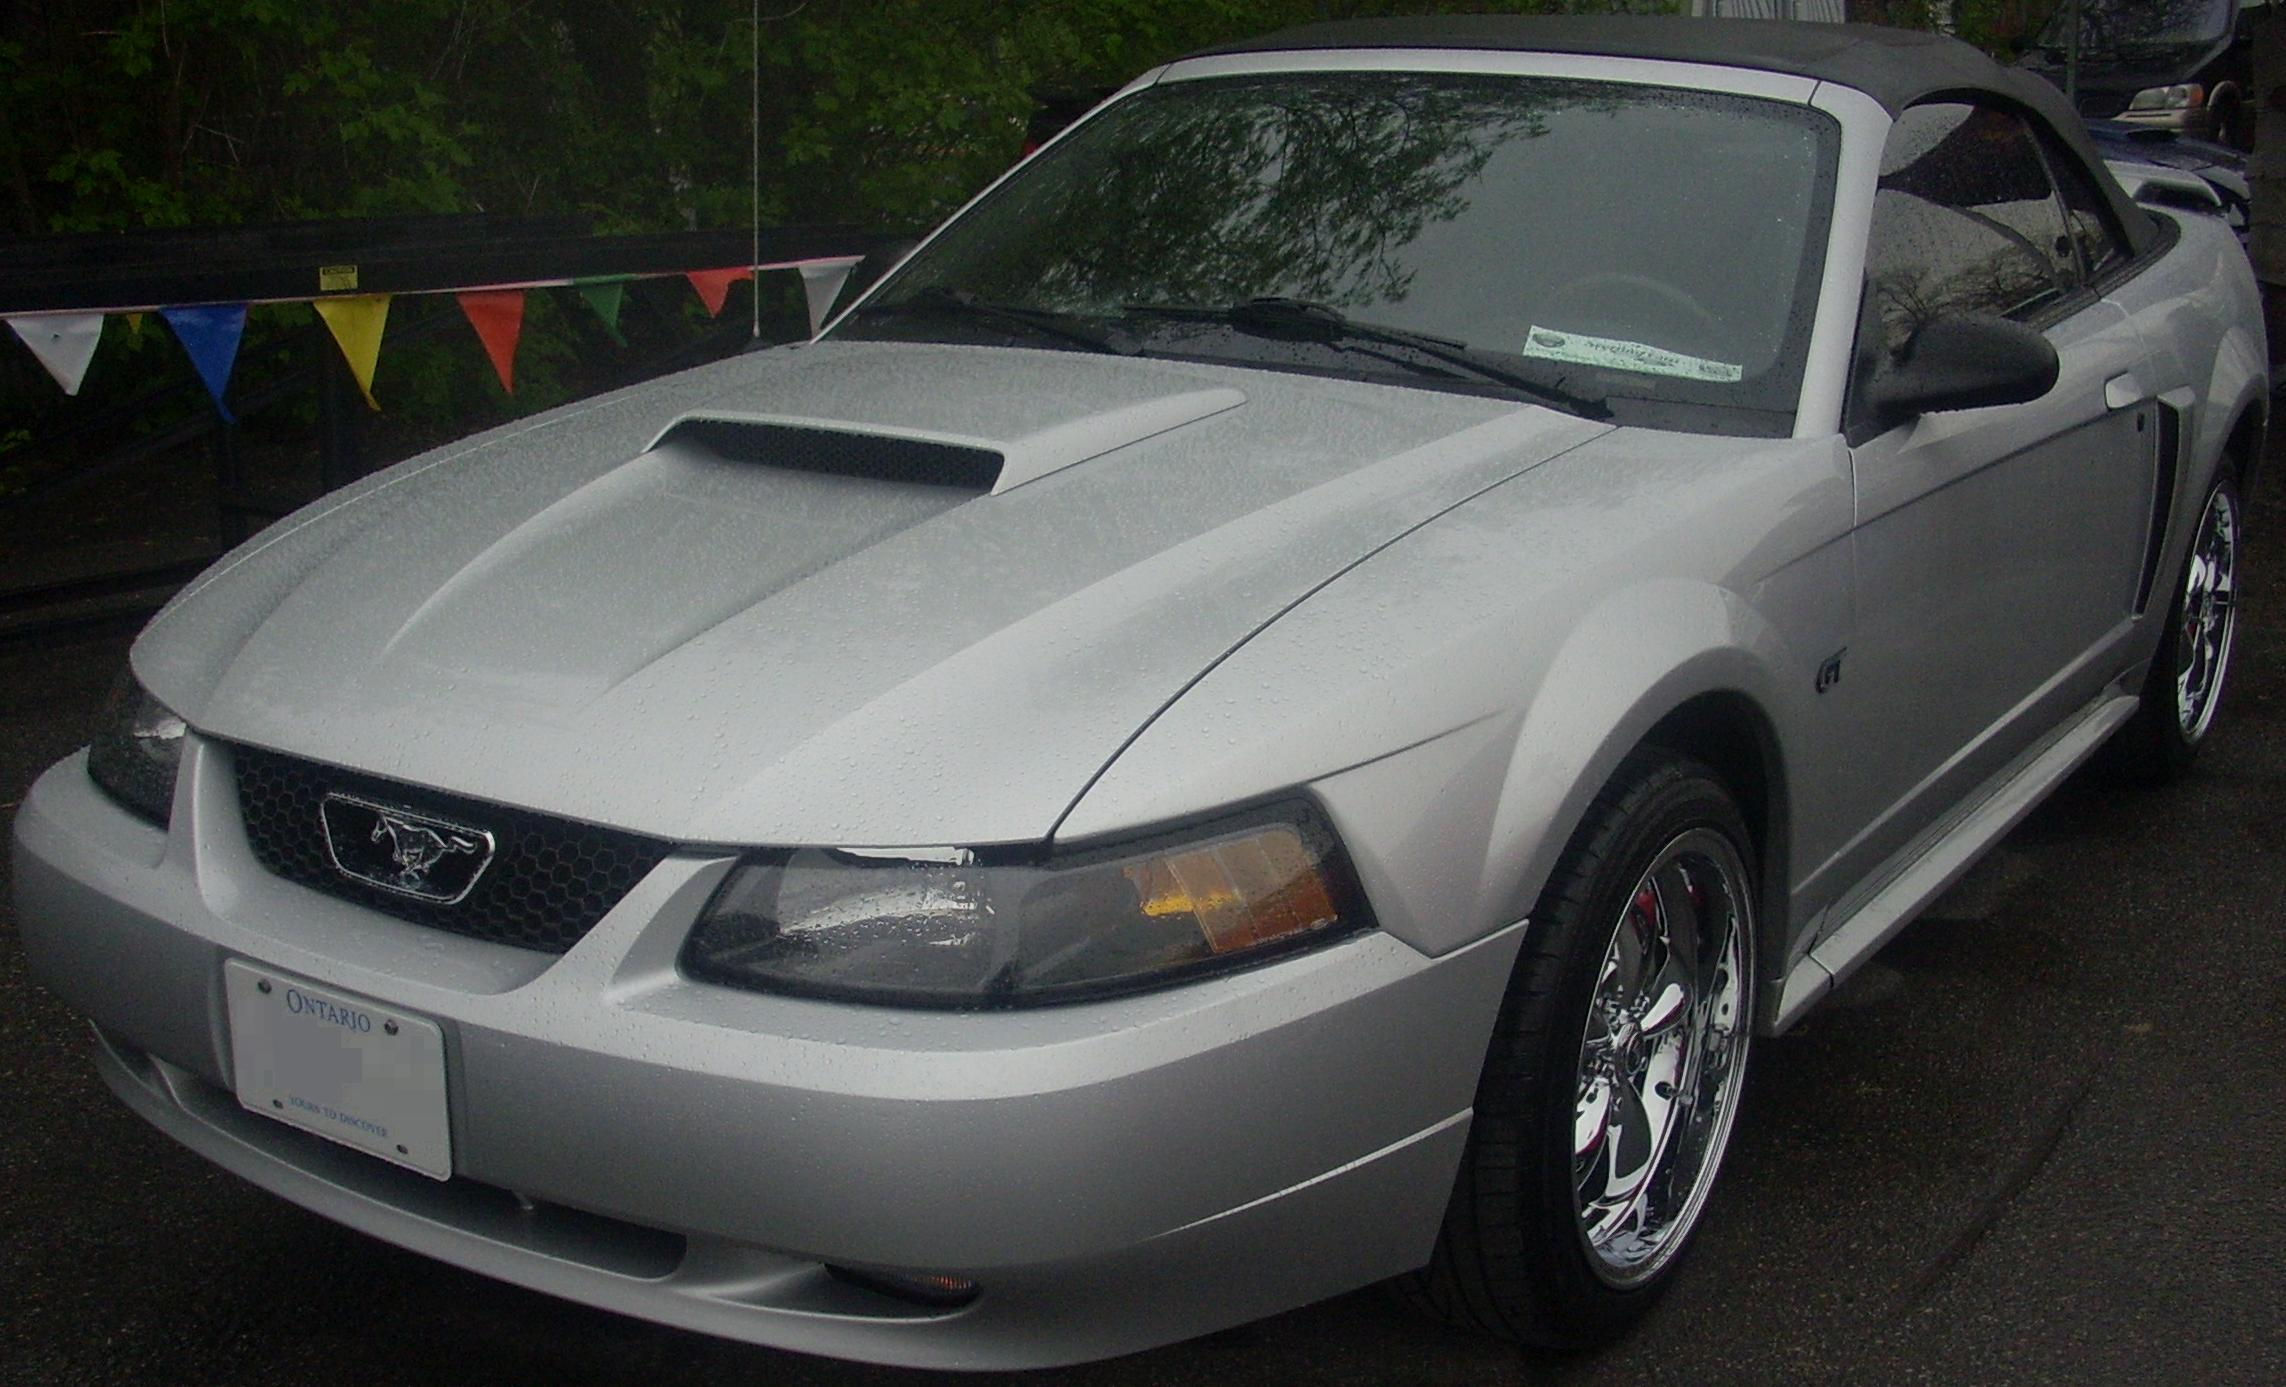 Fileford sn 95 mustang gt convertible sterling ford jpg